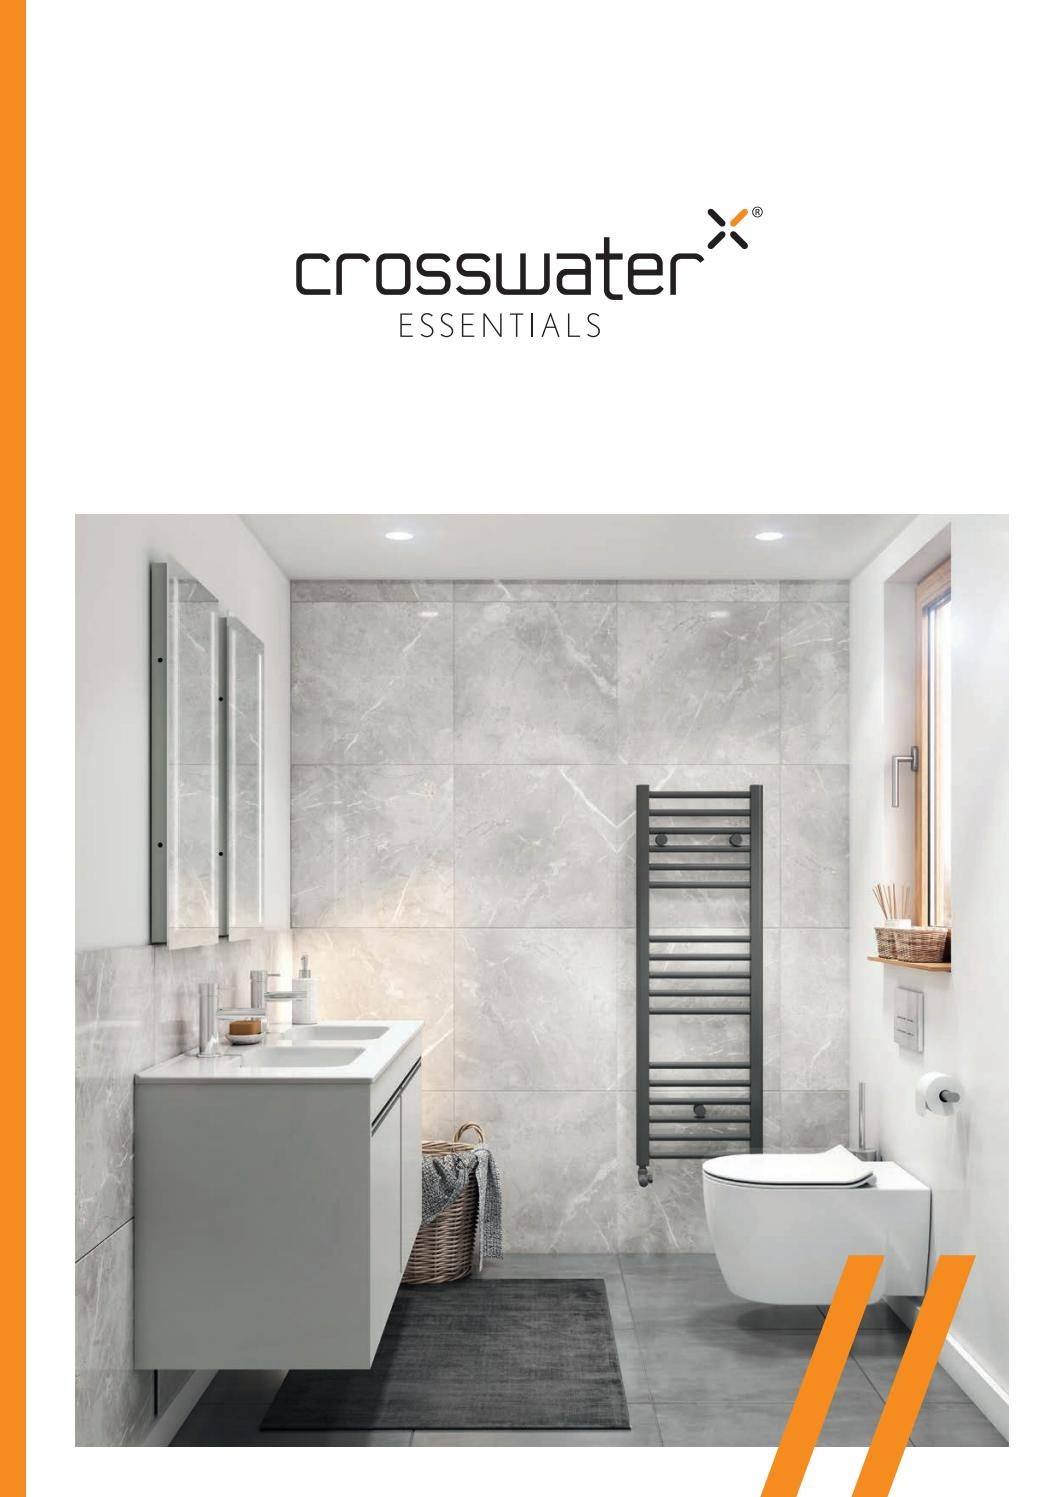 Crosswater Essentials By Centralheat2 Issuu